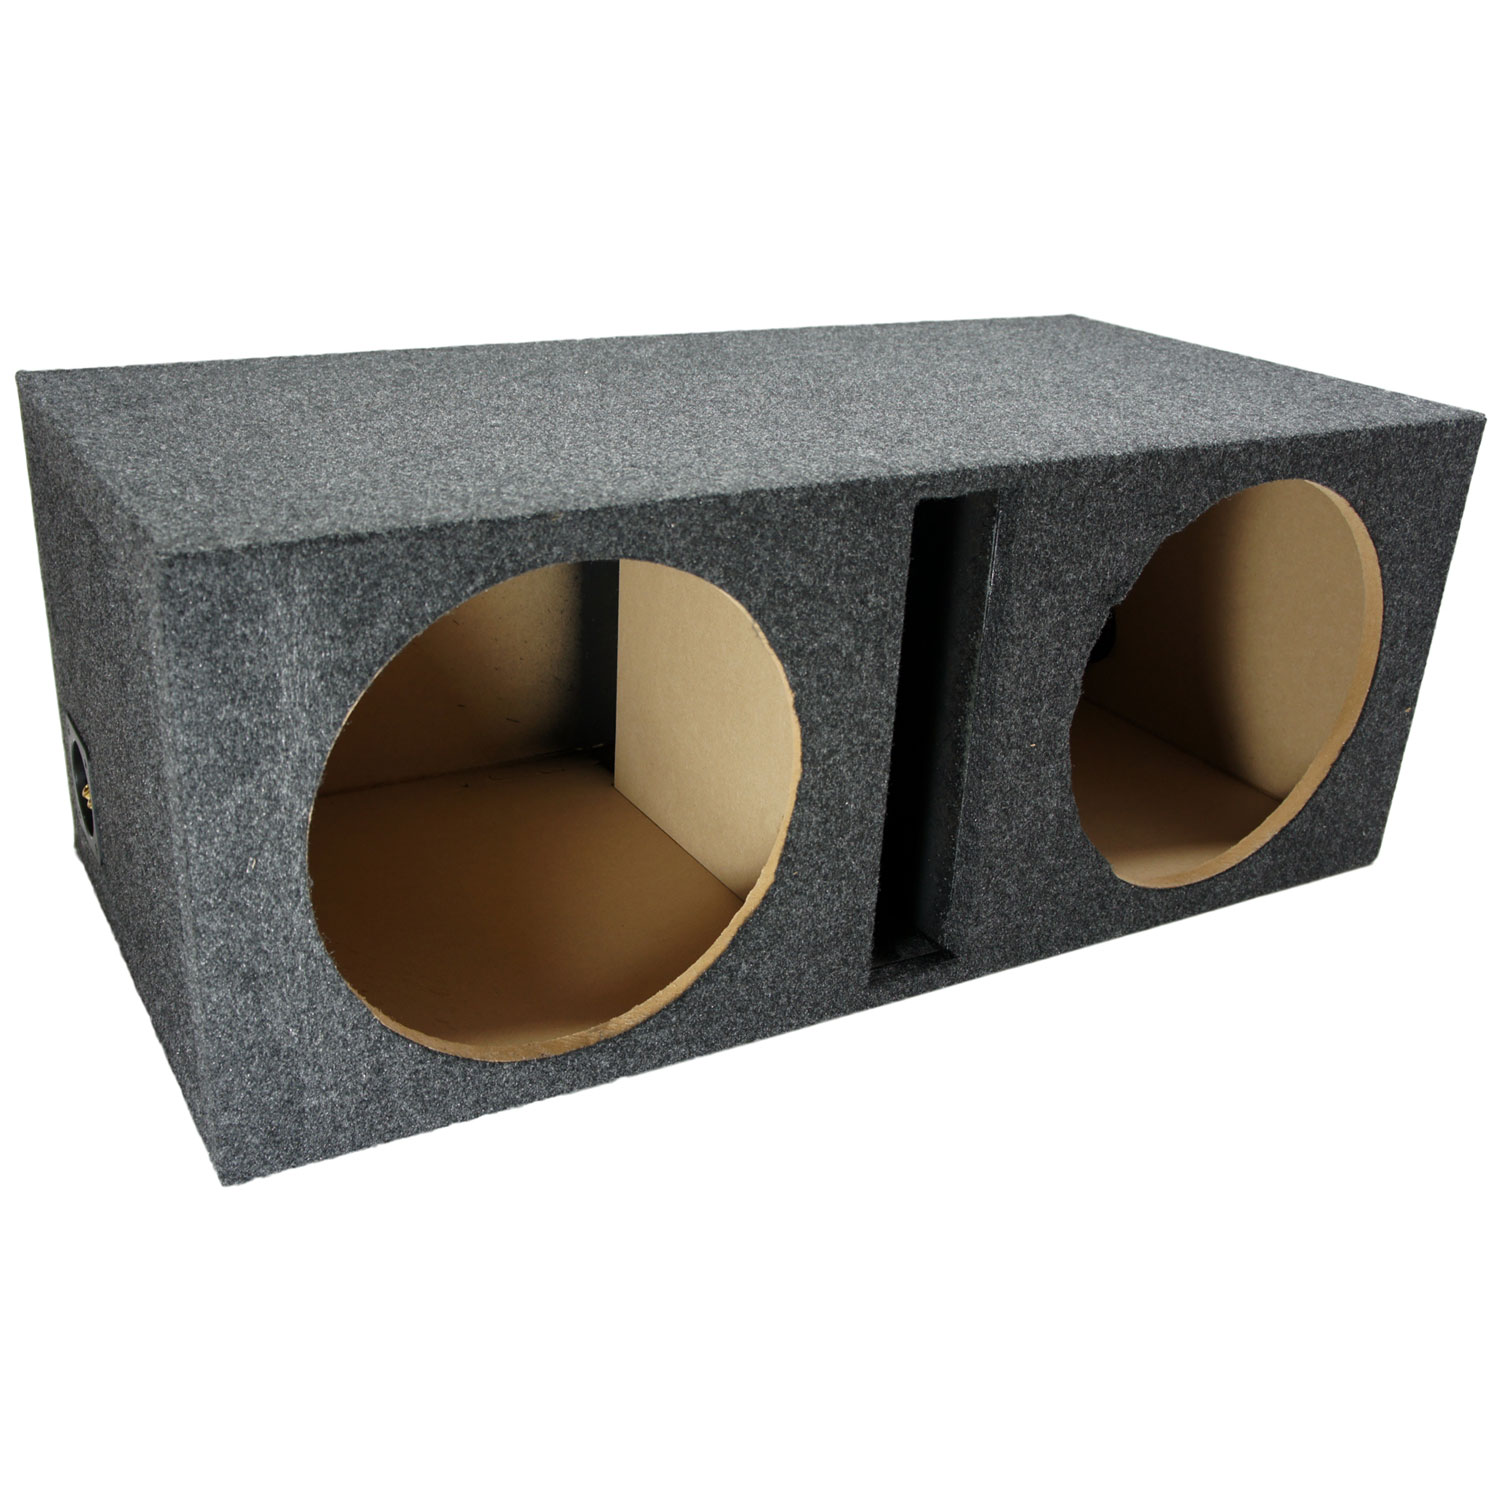 "Car Audio Subwoofer Dual 12"" Vented Sub Box Enclosure"